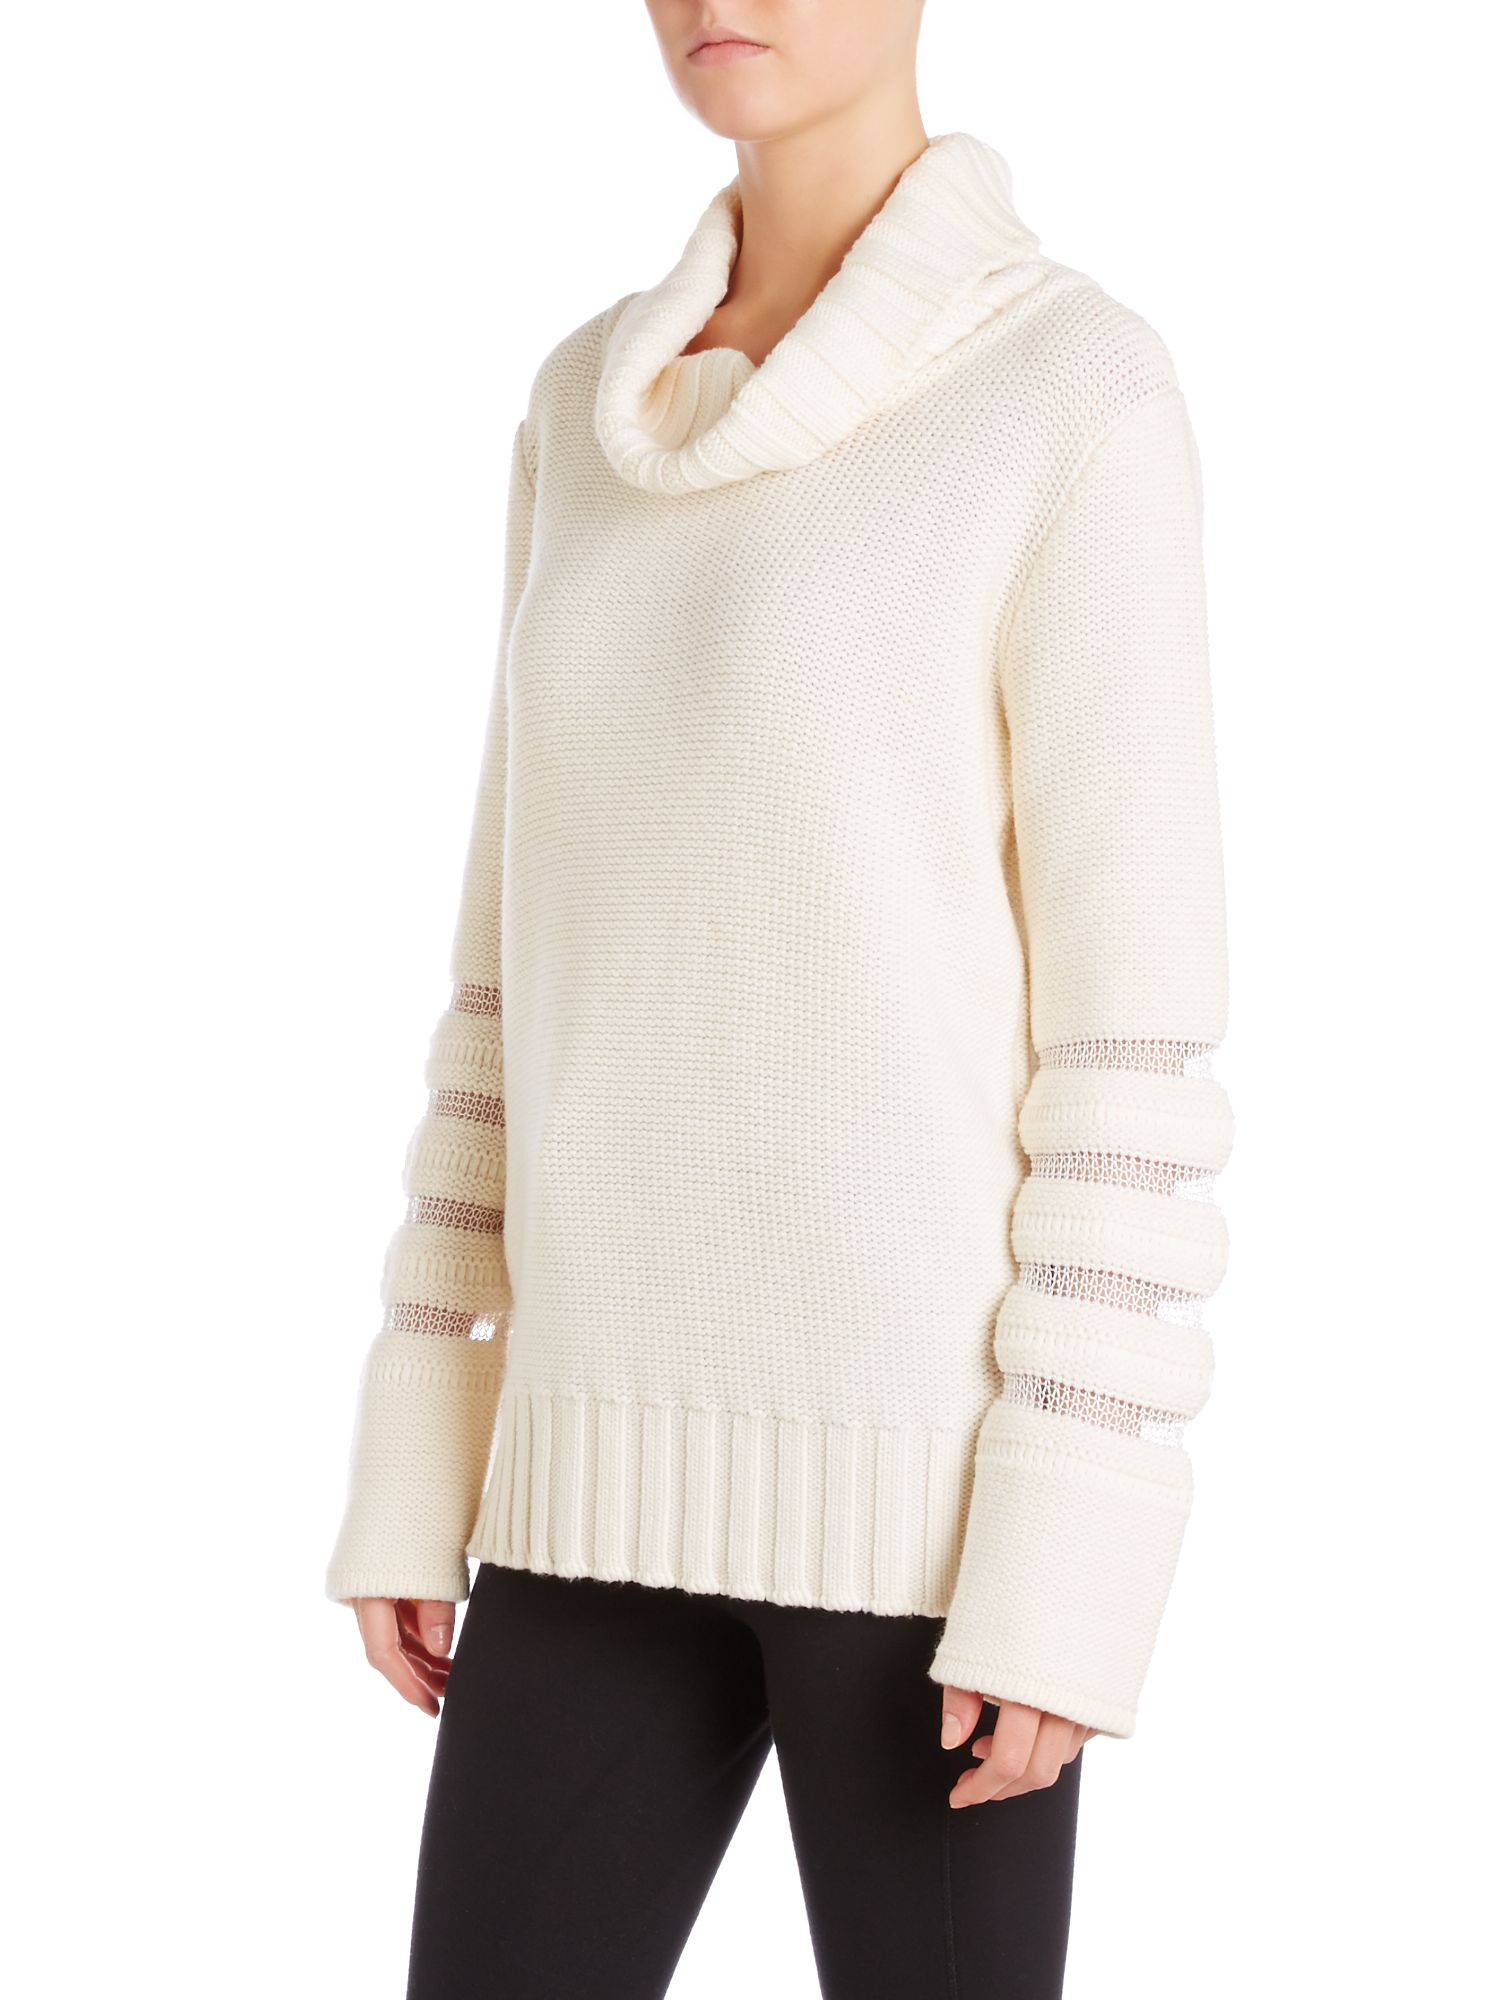 Roll neck jumper with mesh panel sleeves